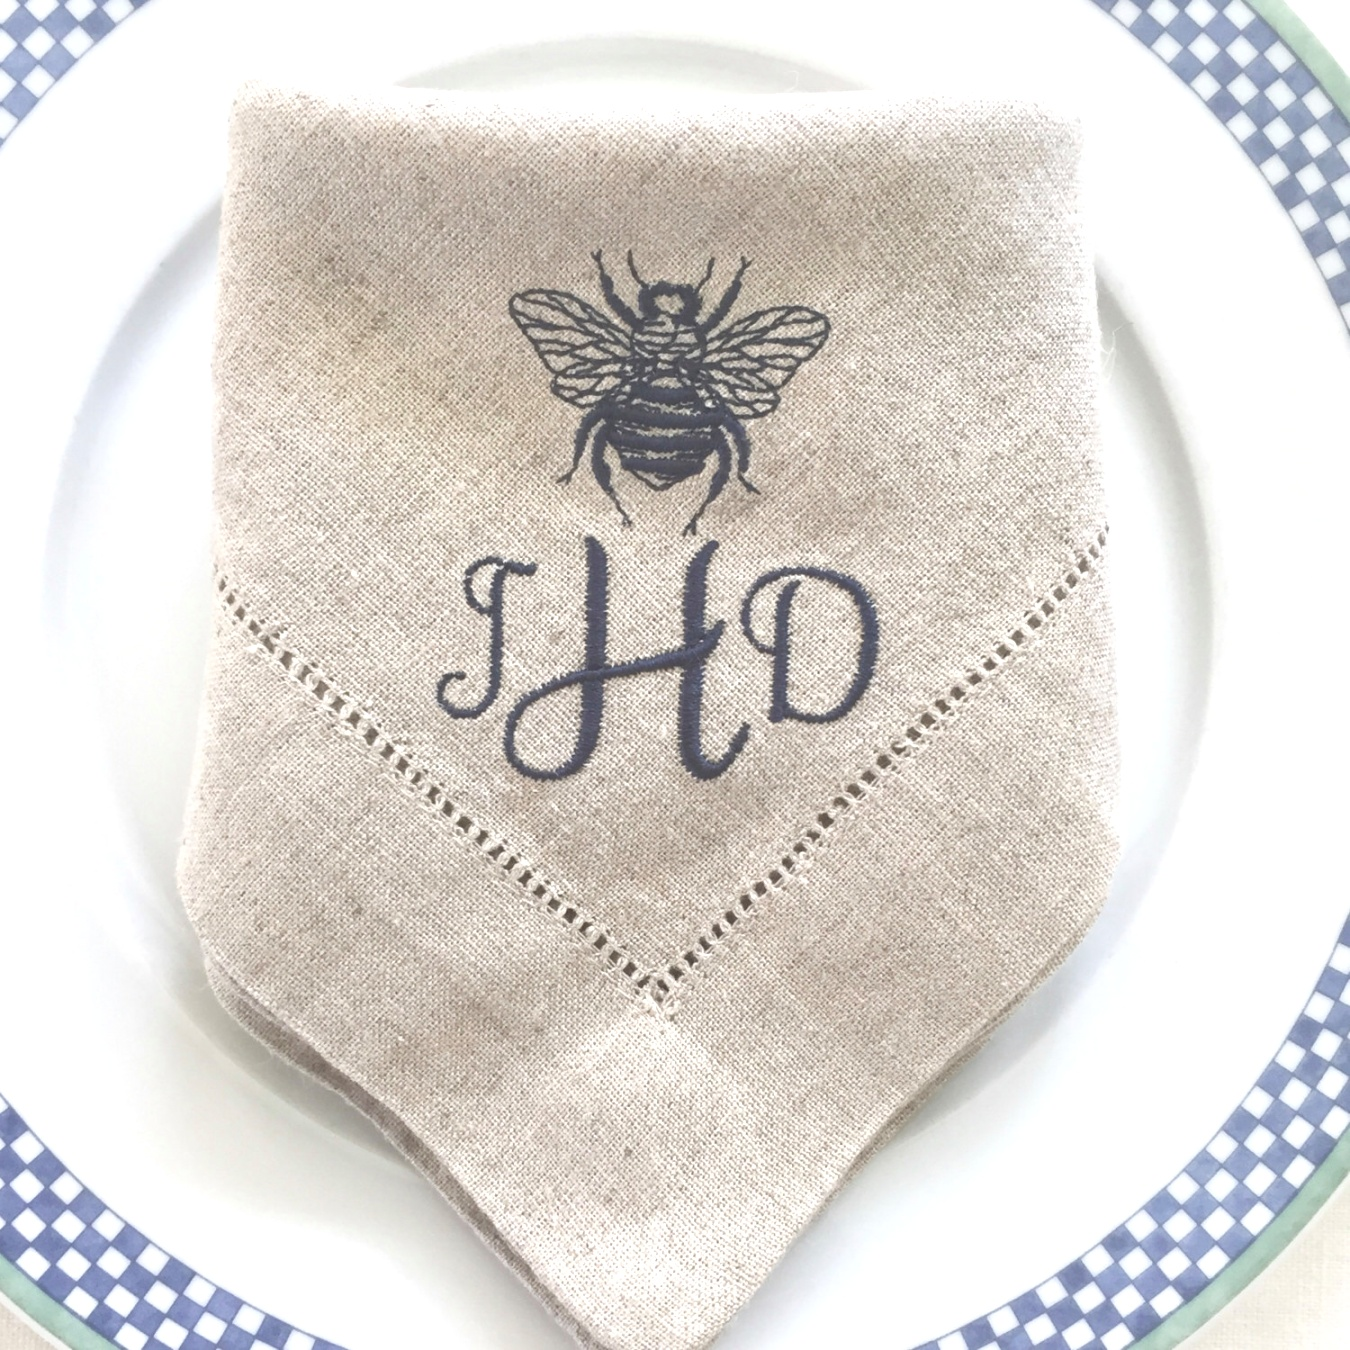 monogrammed table linens | Embroidered Linen Cloth Napkins Bee with Monogram, Monogramed ..